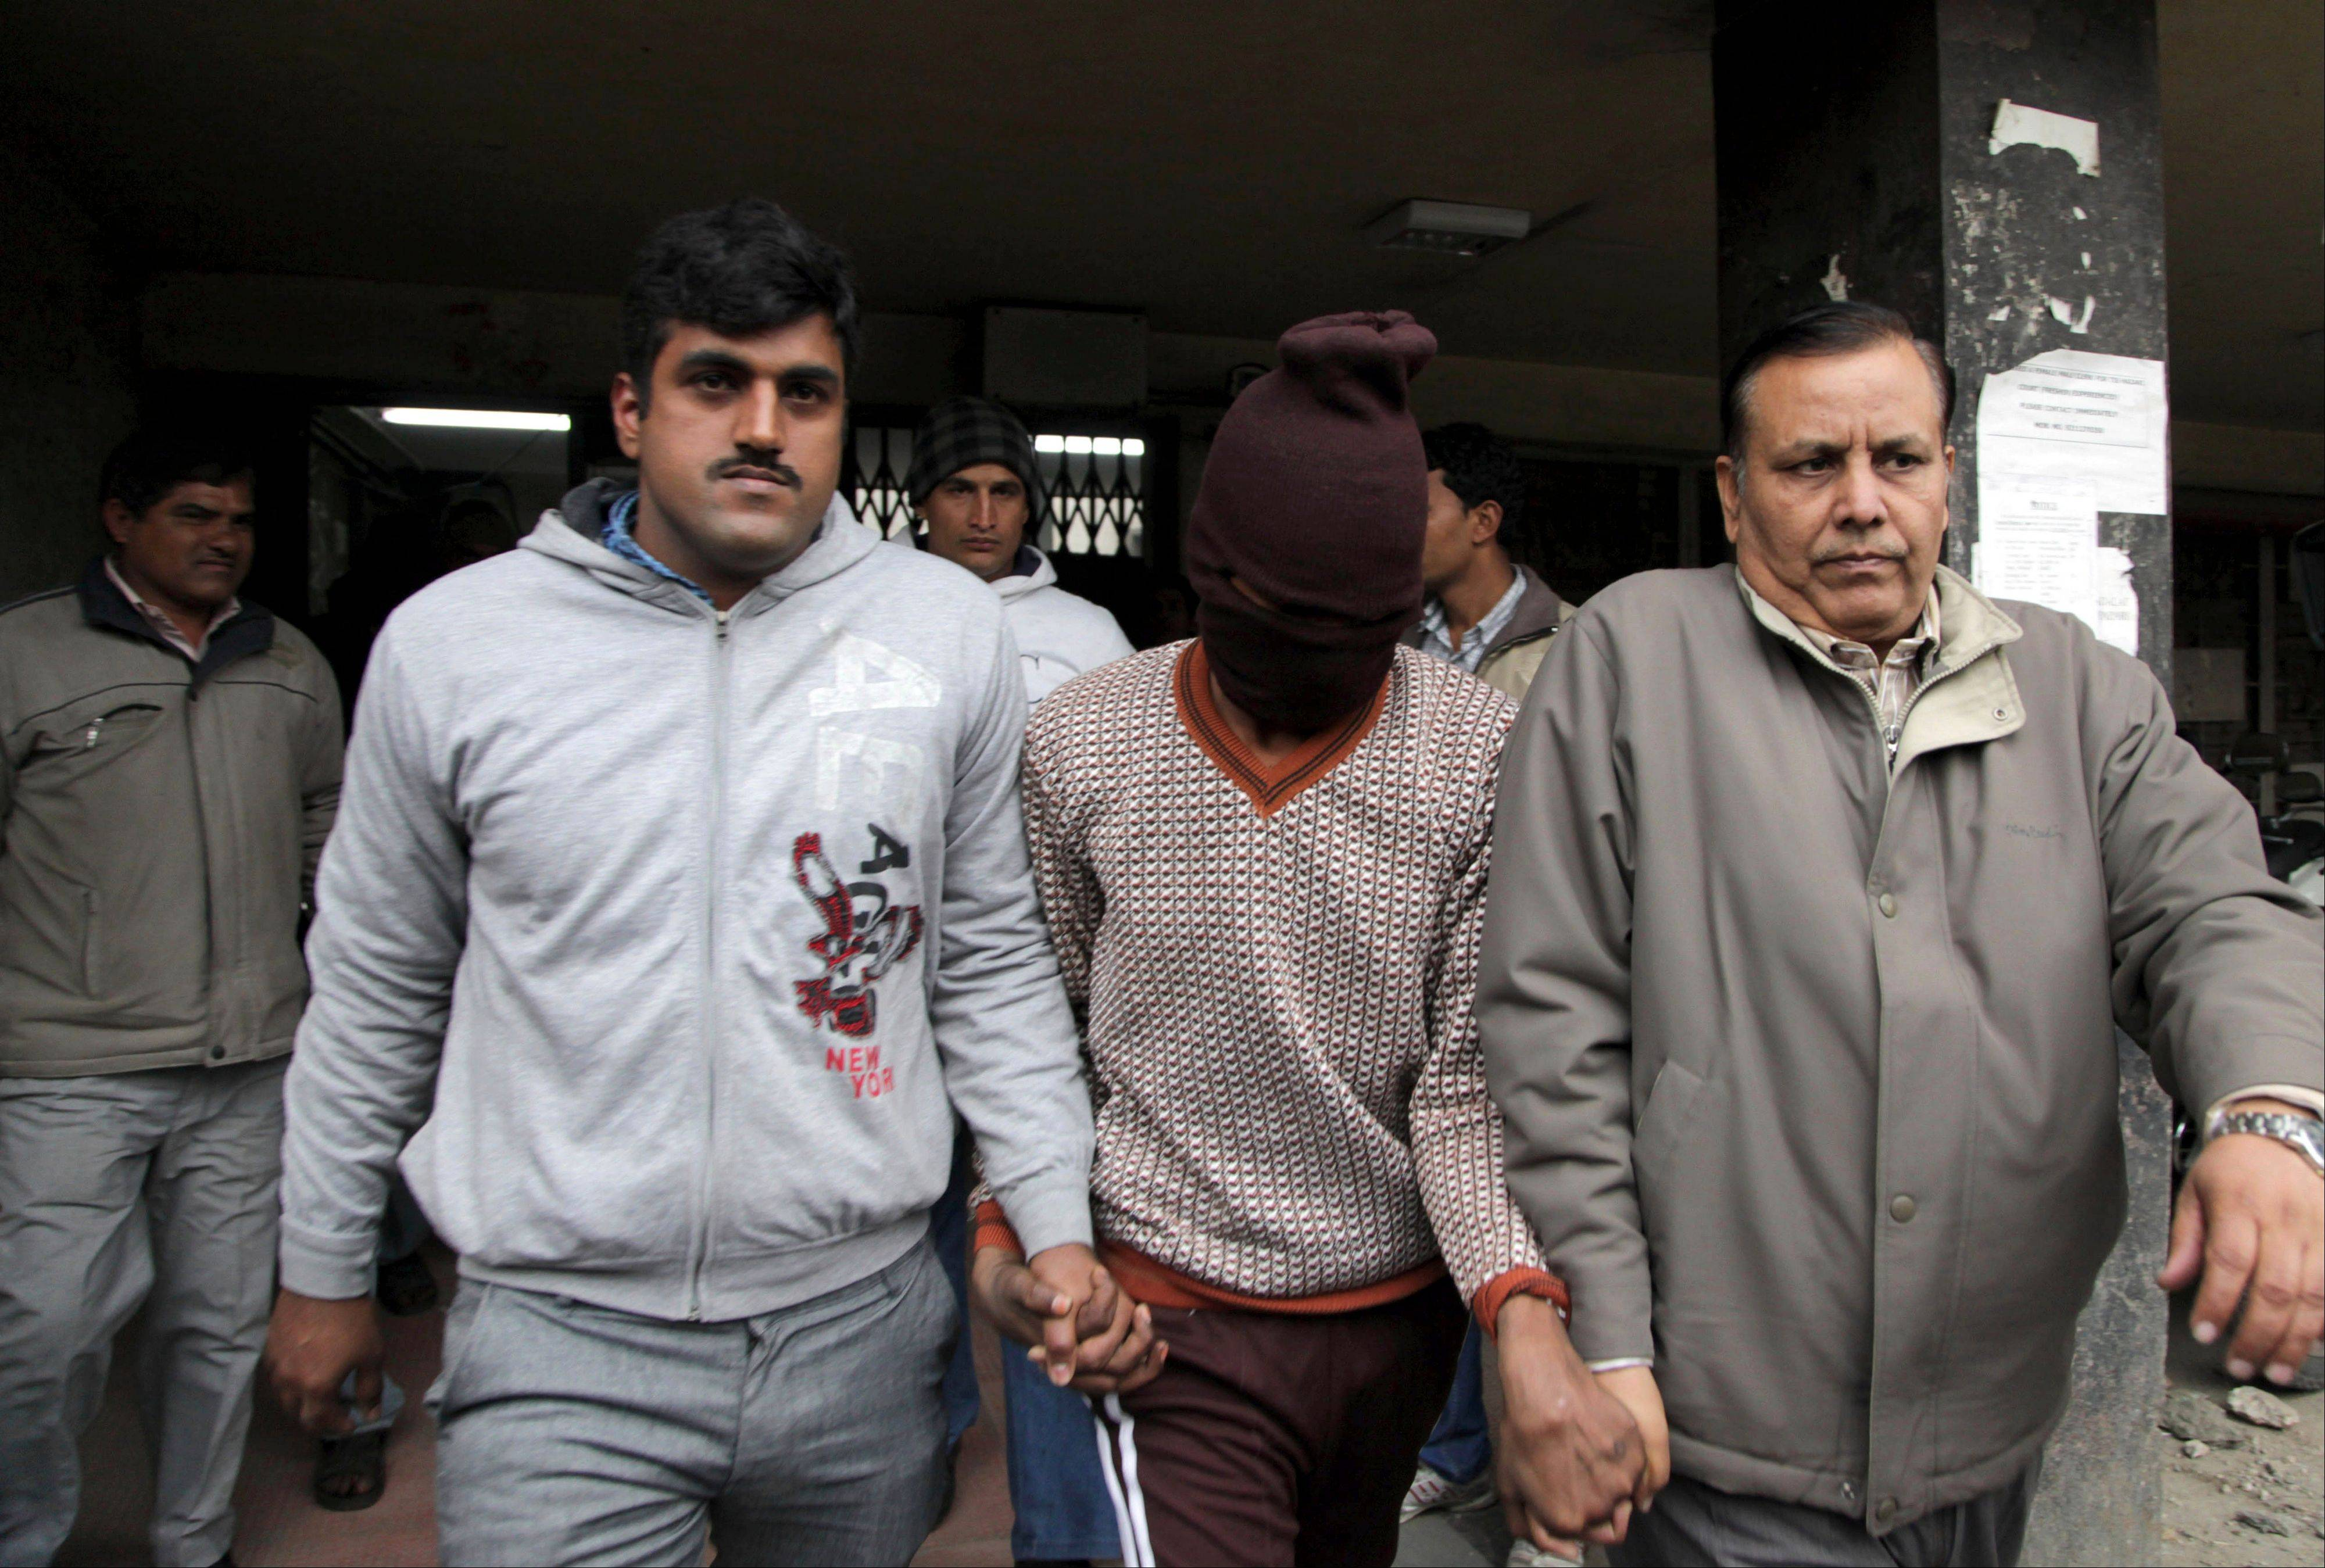 Police officials escort an accused in the gang rape of a 51-year-old Danish tourist as they walk out of a court in New Delhi, India, Thursday, Jan. 16, 2014.